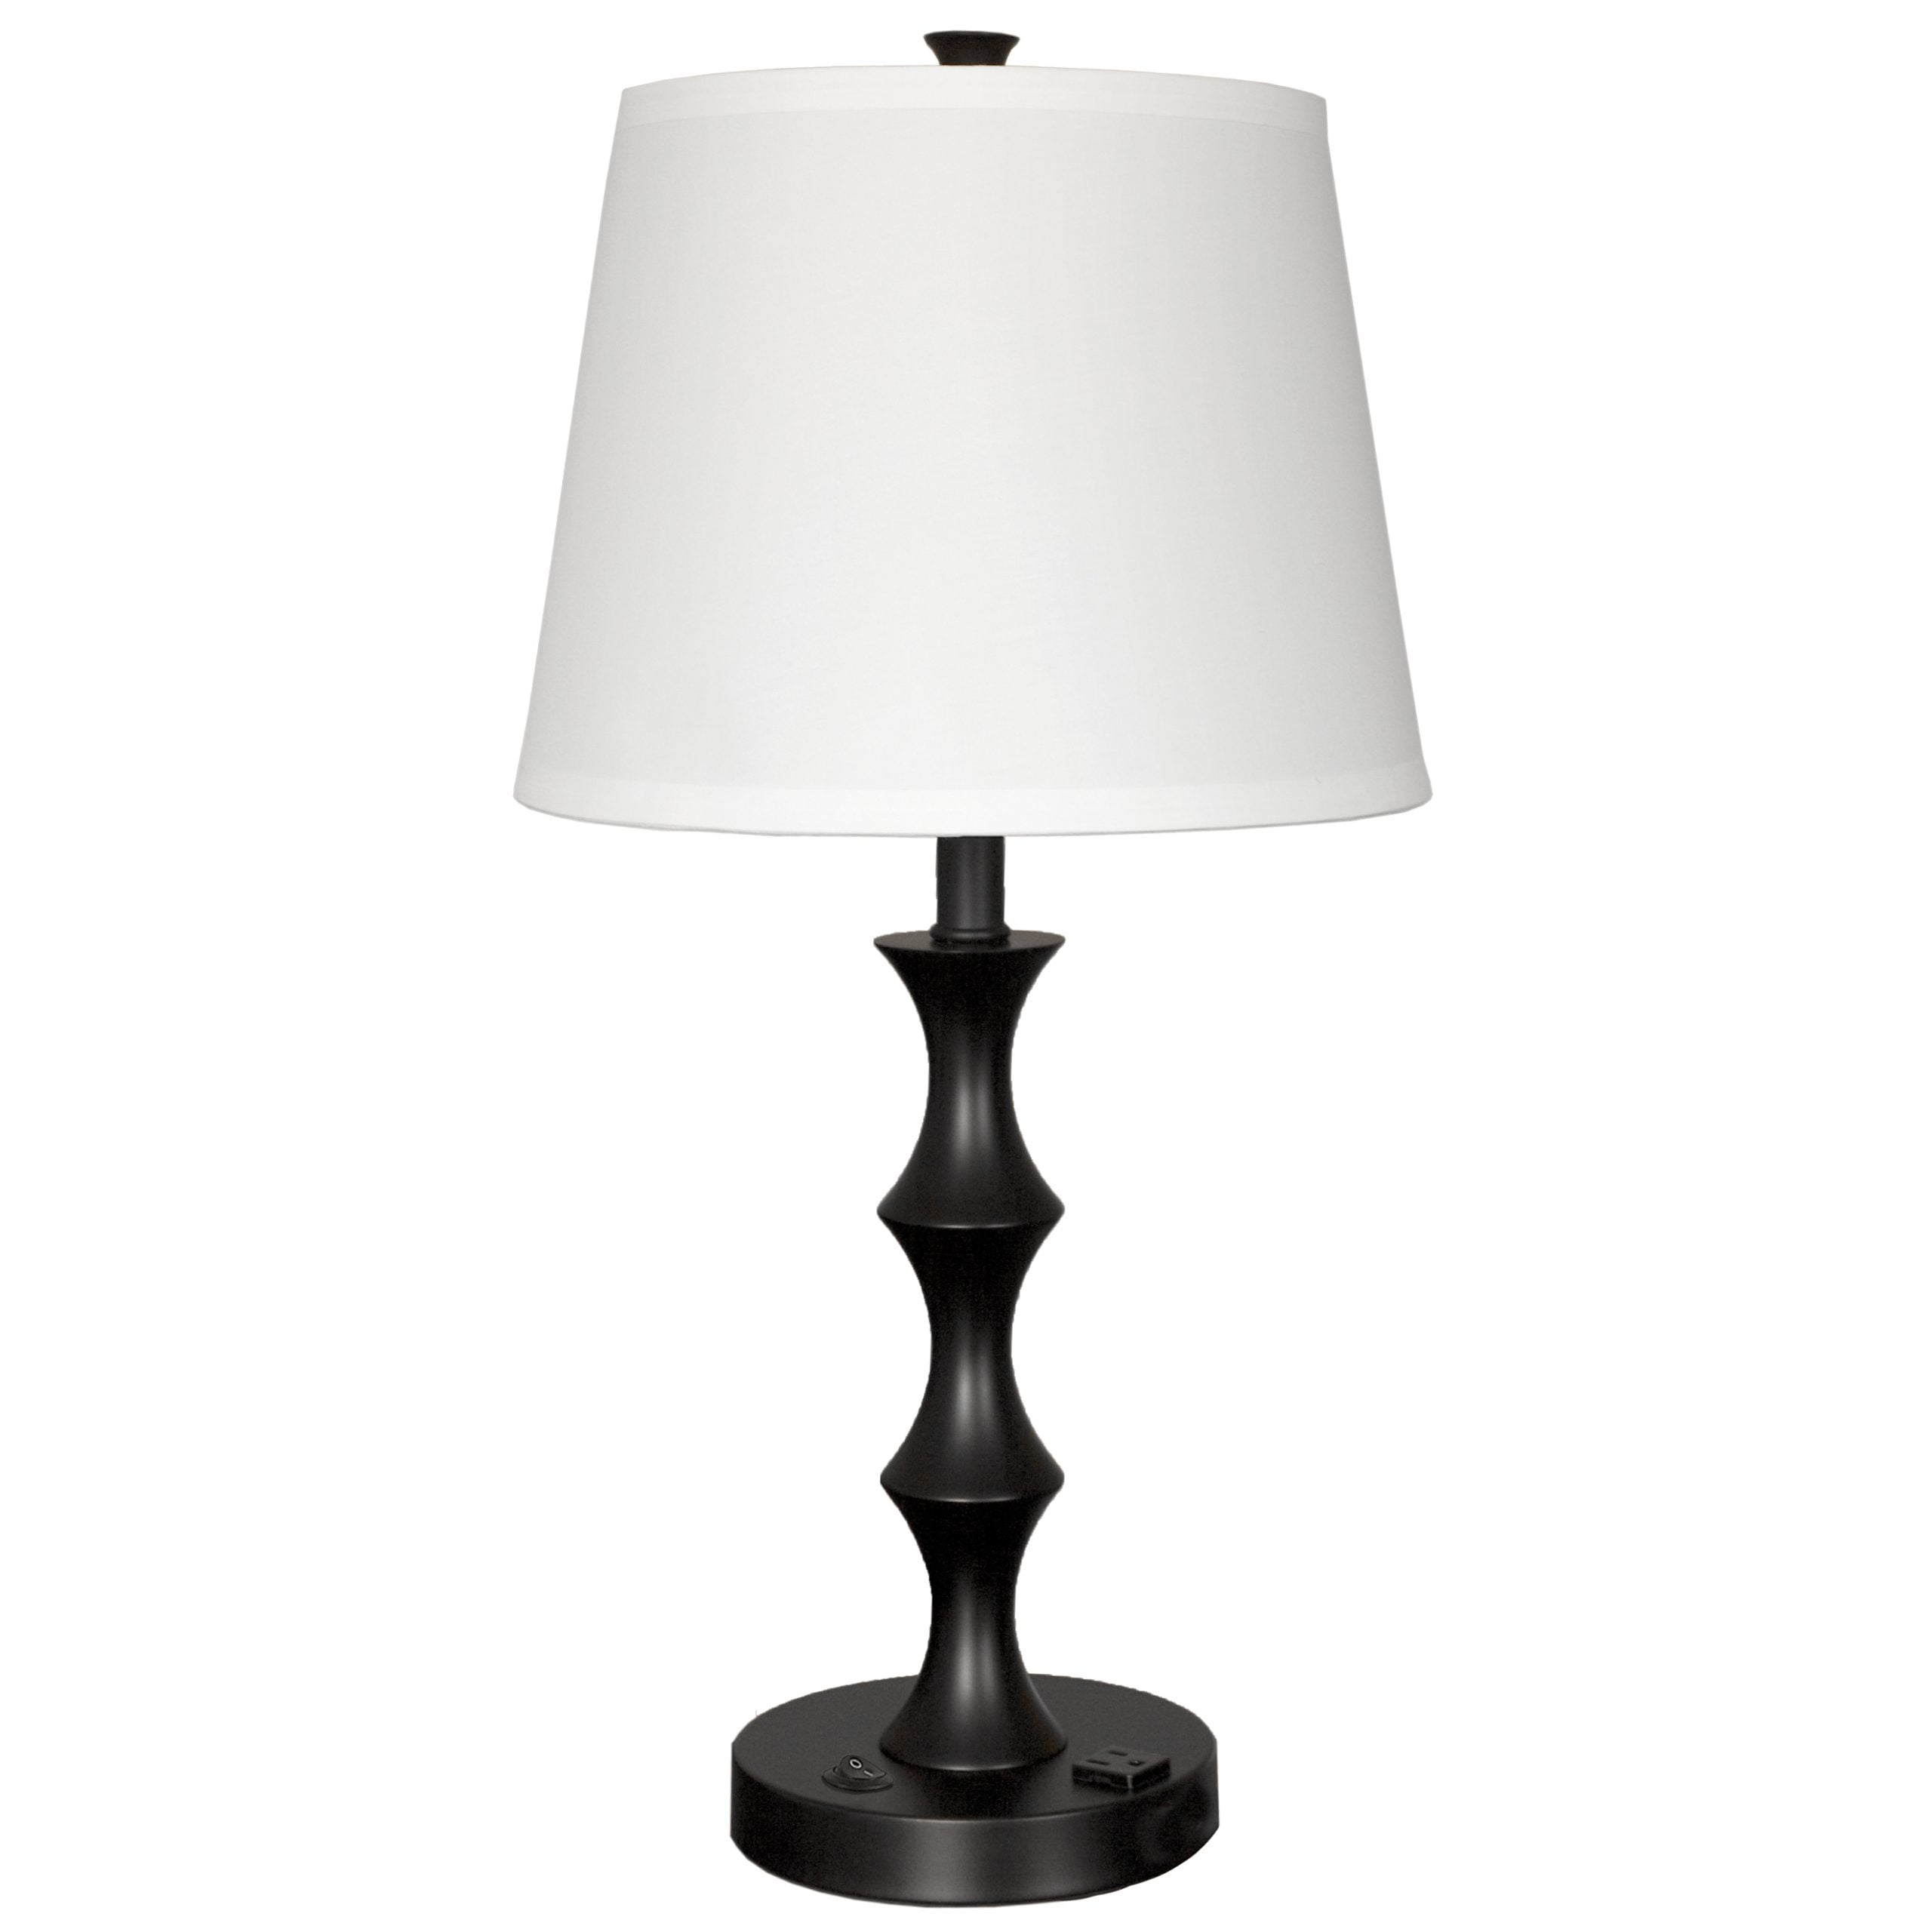 Urban End Table Lamp with 1 Outlet